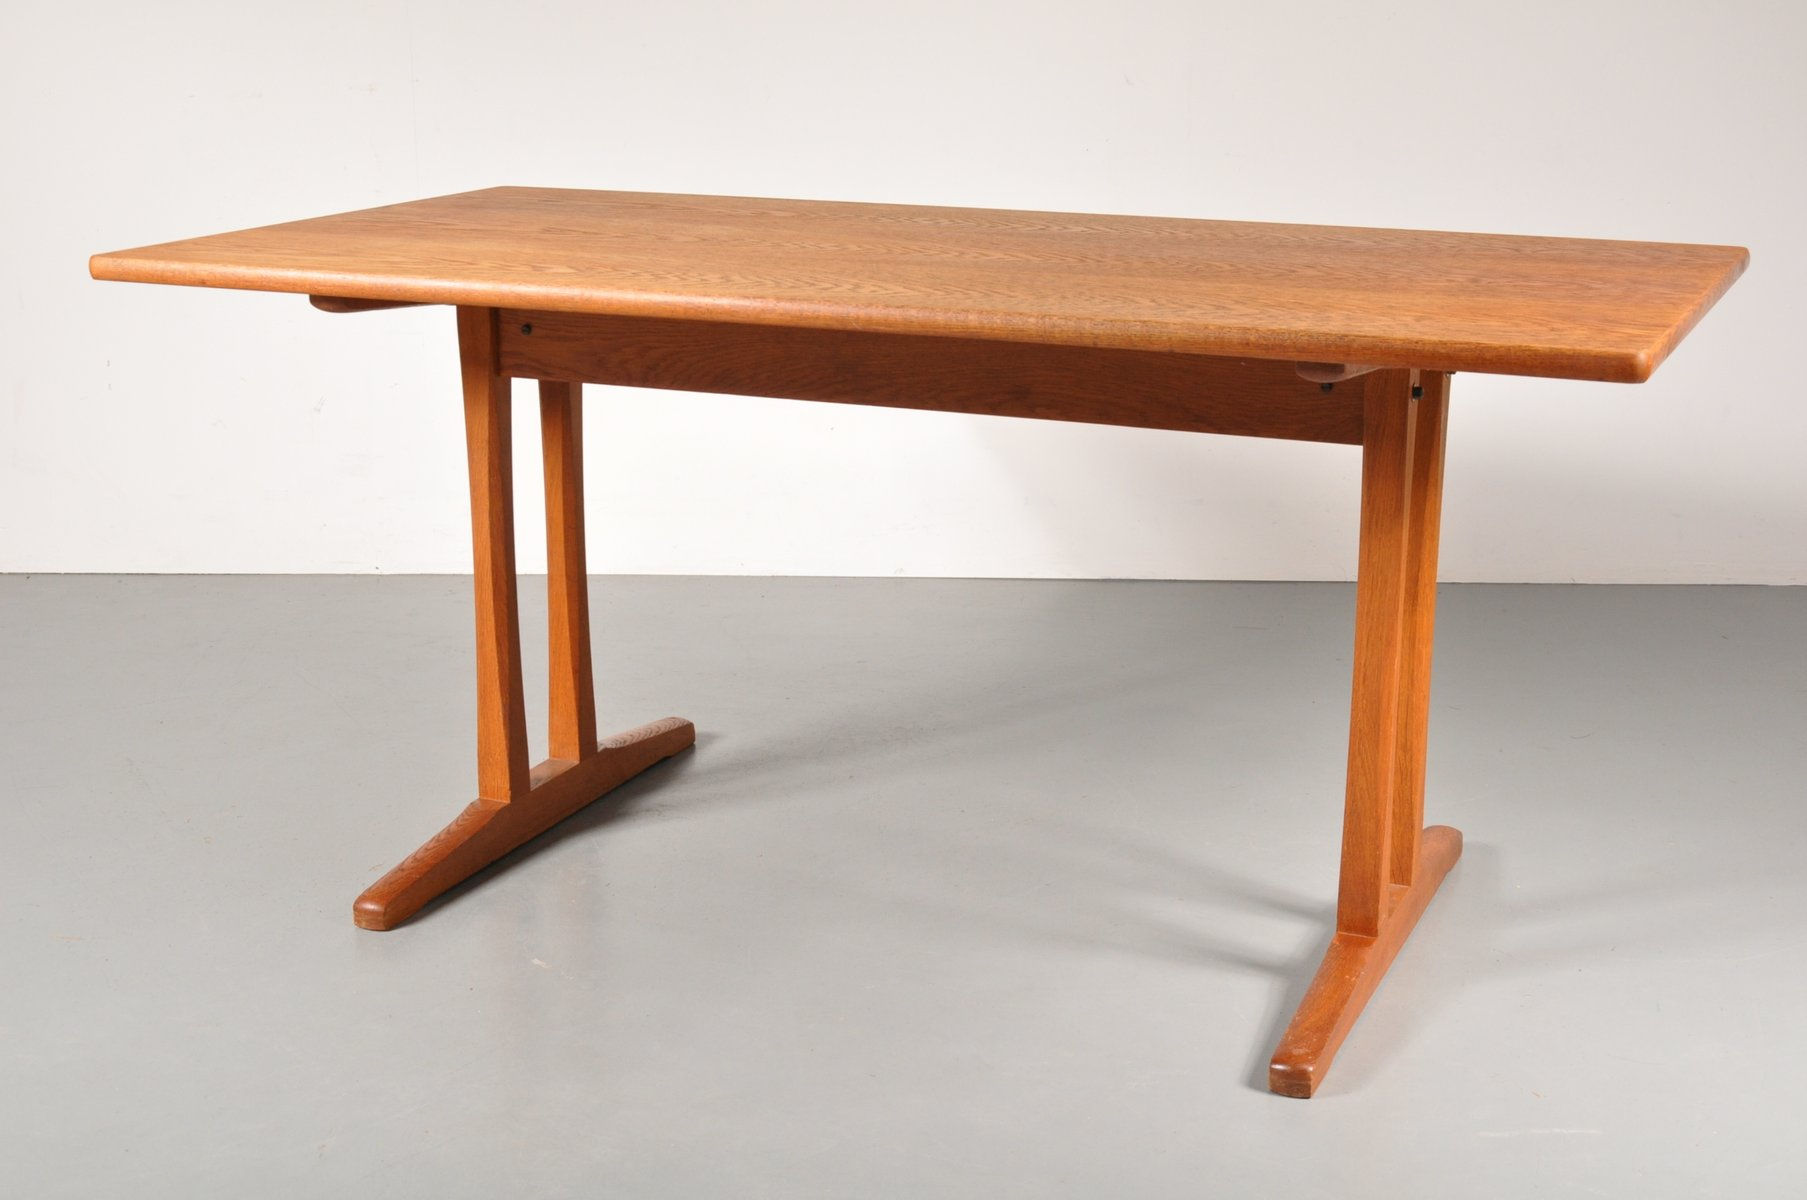 Scandinavian Shaker Dining Table by Borge Mogensen for FDB 1960s